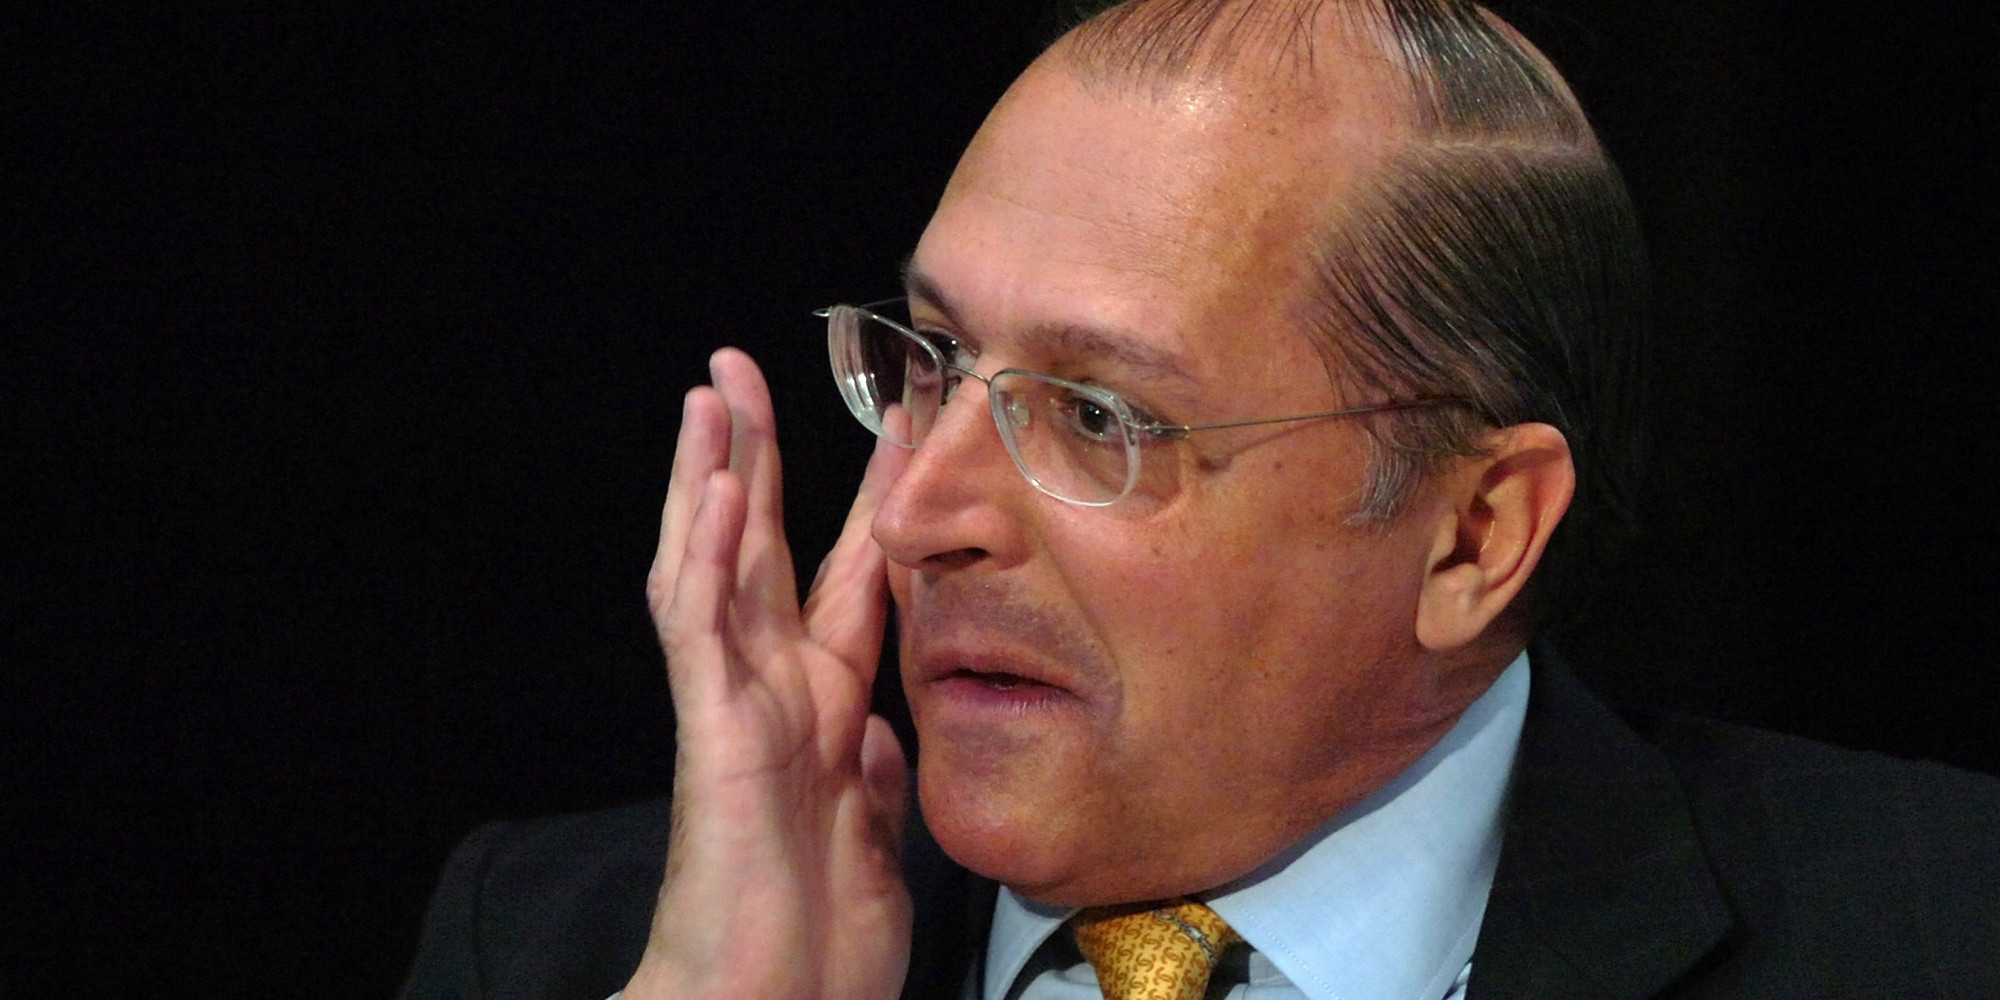 Brazilian Presidential candidate, Social Democrat Geraldo Alckmin listens to a question during a meeting at Brazil's newspaper O Globo in Rio de Janeiro, Brazil, on Wednesday, Aug. 30, 2006. Brazilians will go to the polls on Oct. 1.  (AP Photo/Andre Luiz Mello)